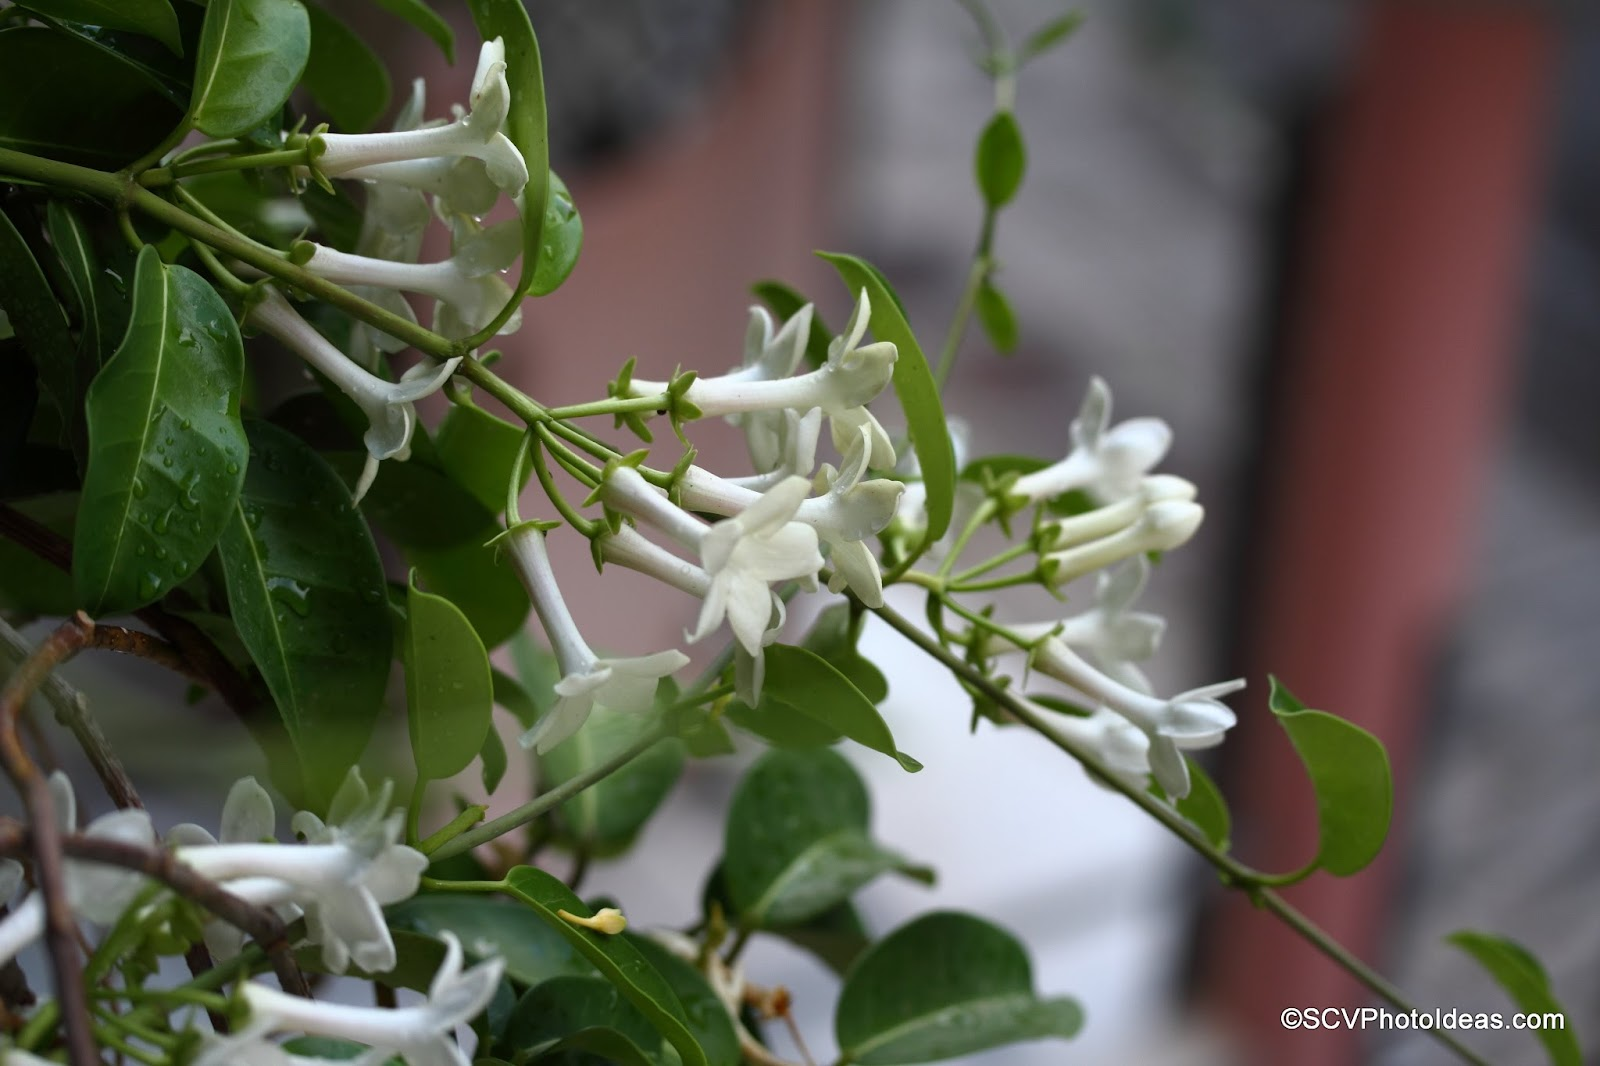 Stephanotis floribunda (Madagascar jasmine) showered flower bunches